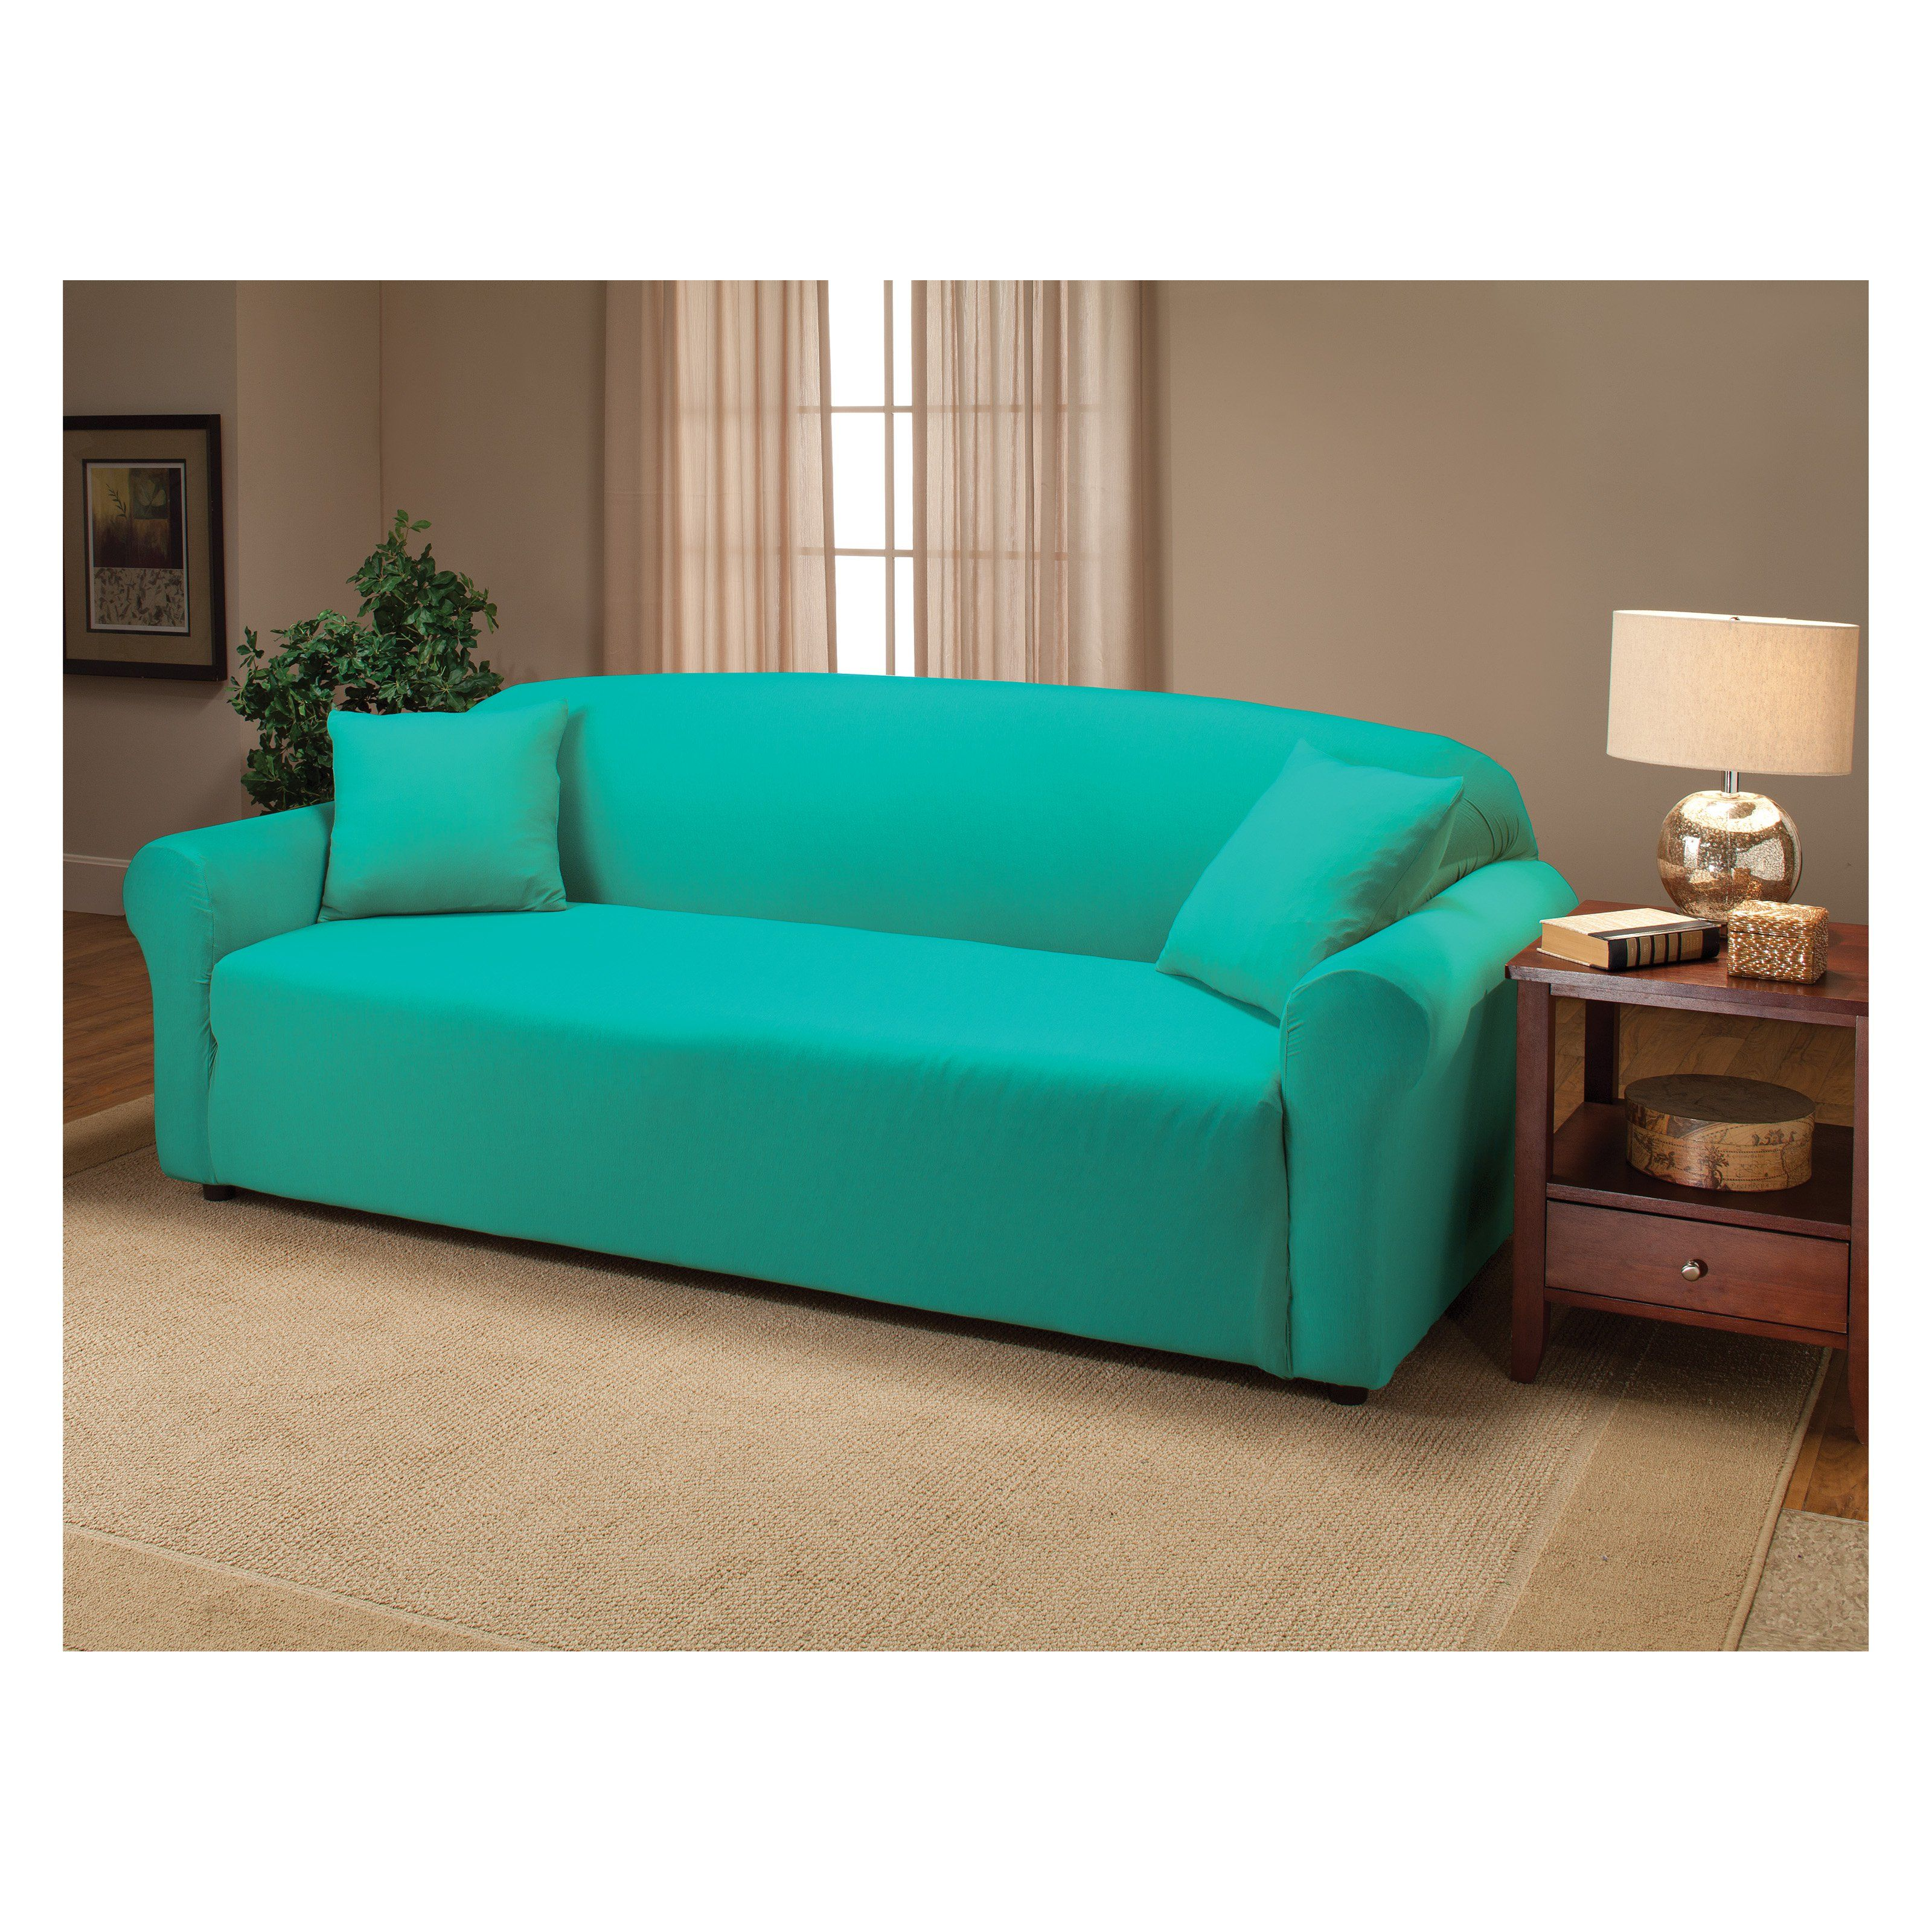 Pin By Sofacouchs On Apartment Sofa Sofa Covers Slipcovers